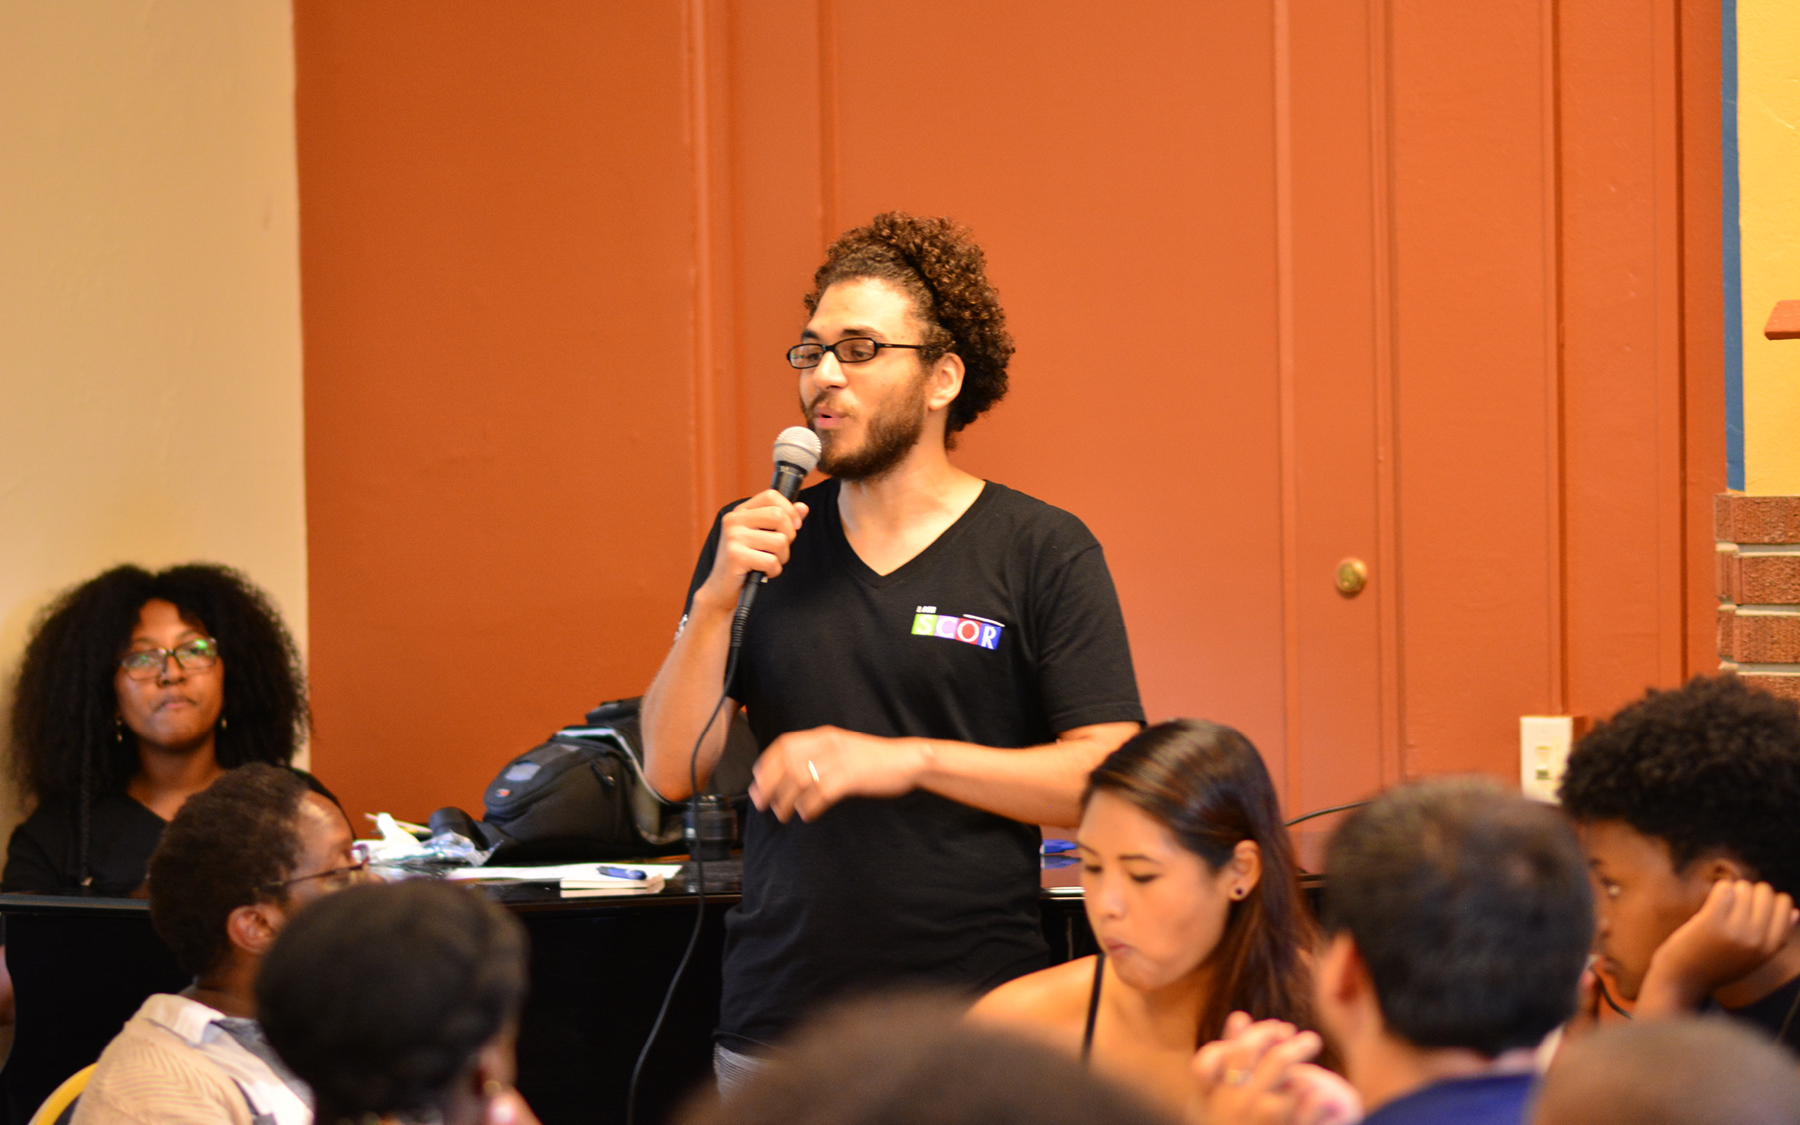 A SCOR member holding a microphone delivers remarks at an event.